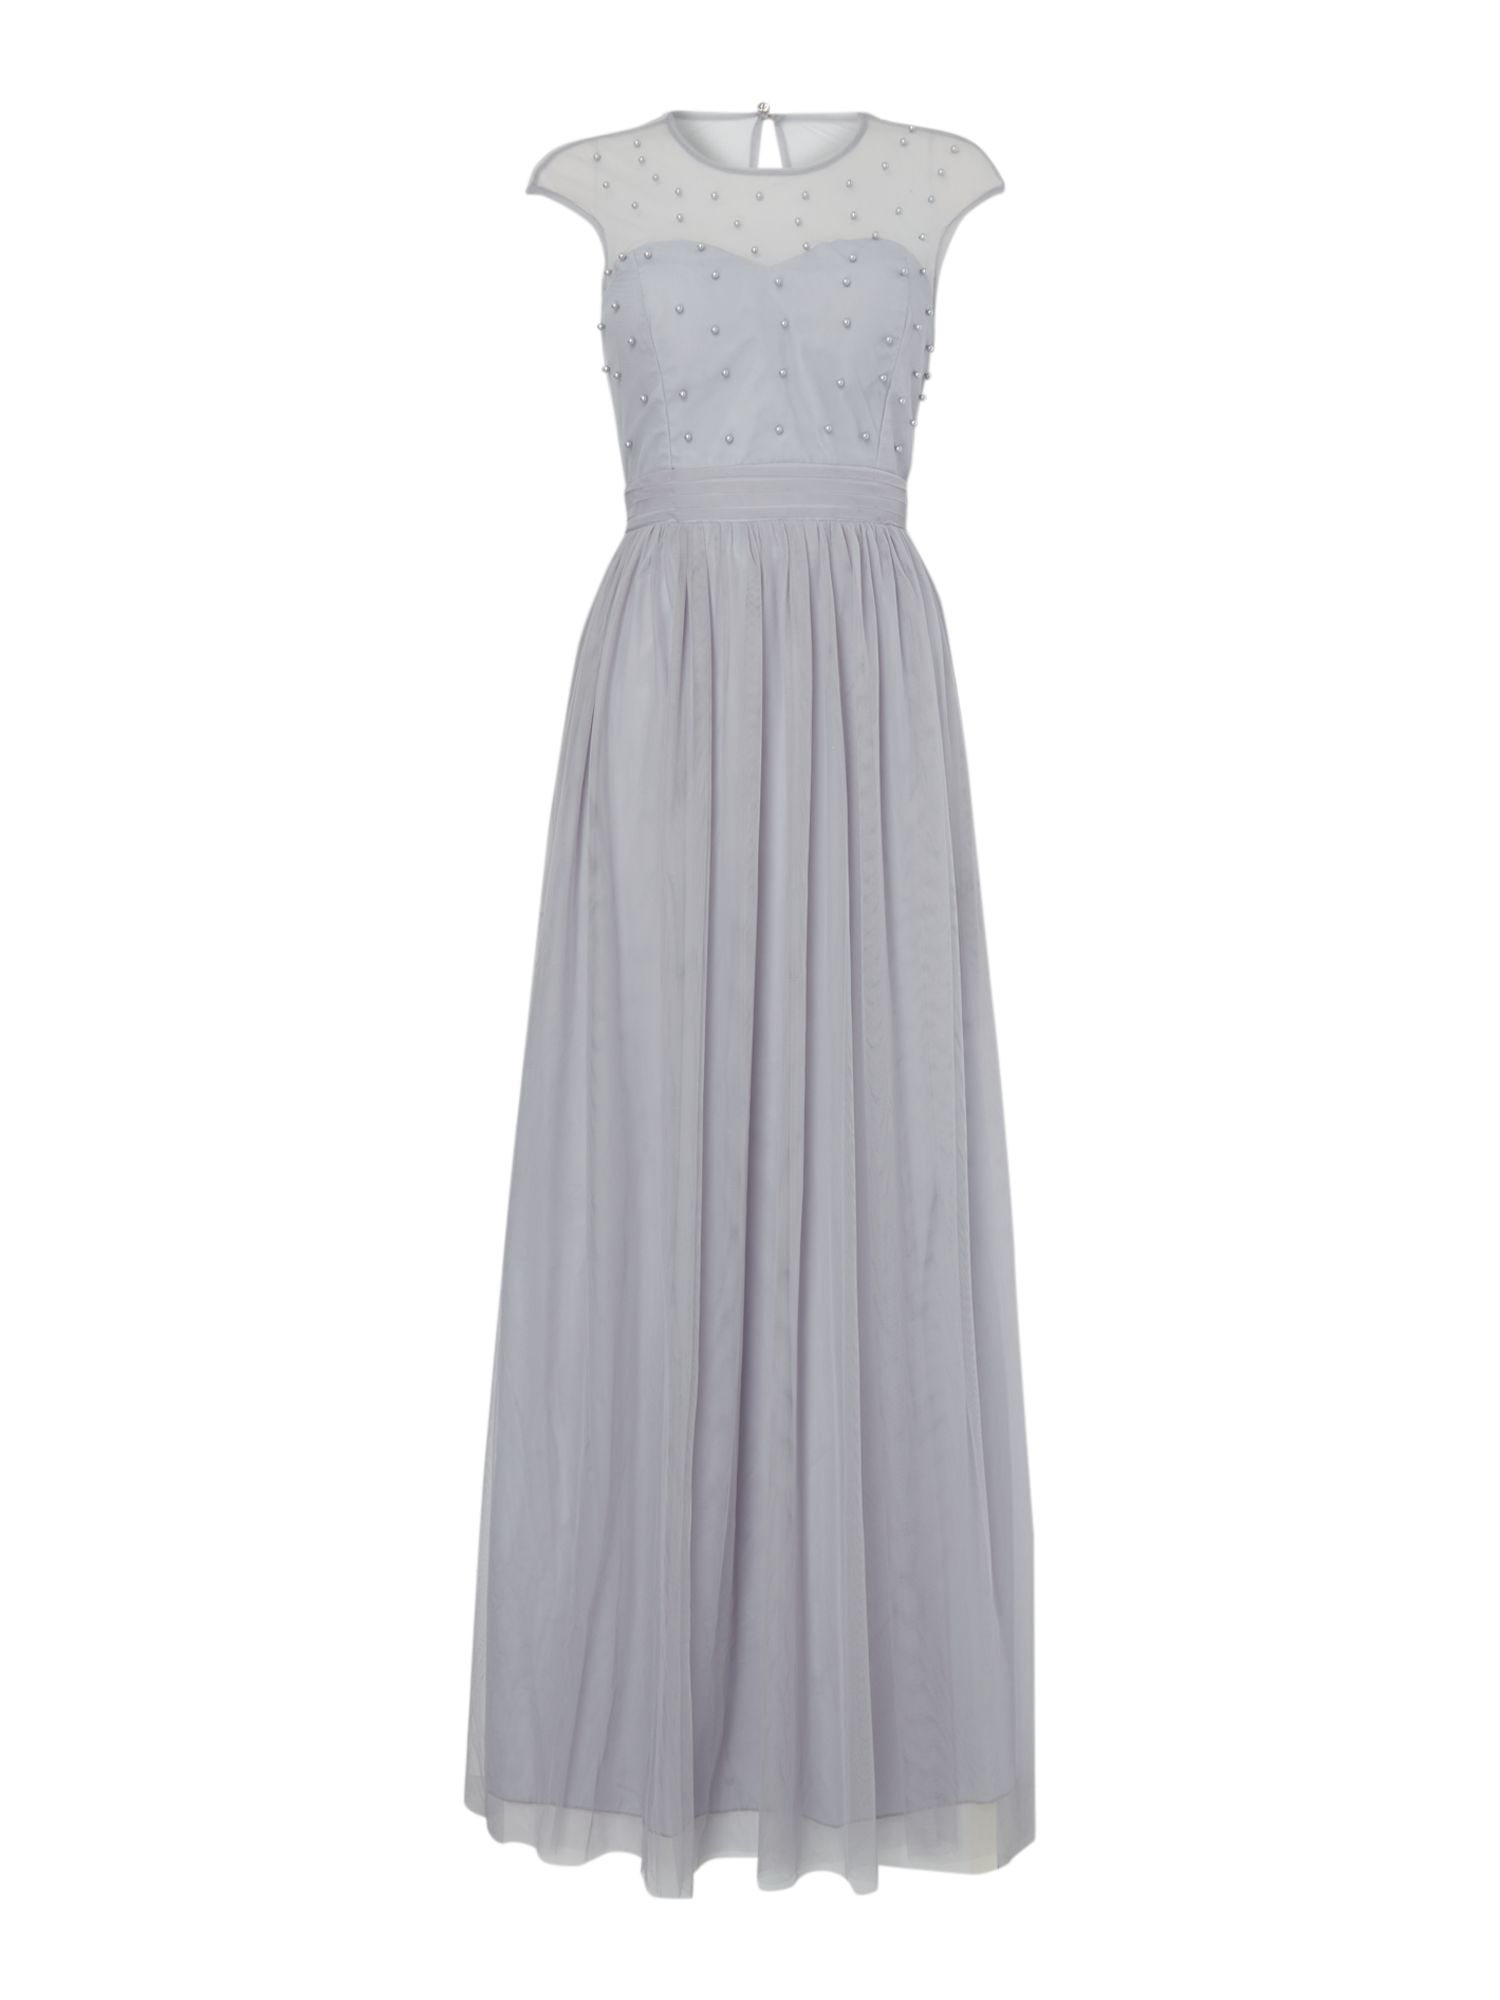 Little Mistress mesh top maxi dress with cap sleeves in grey., Blue